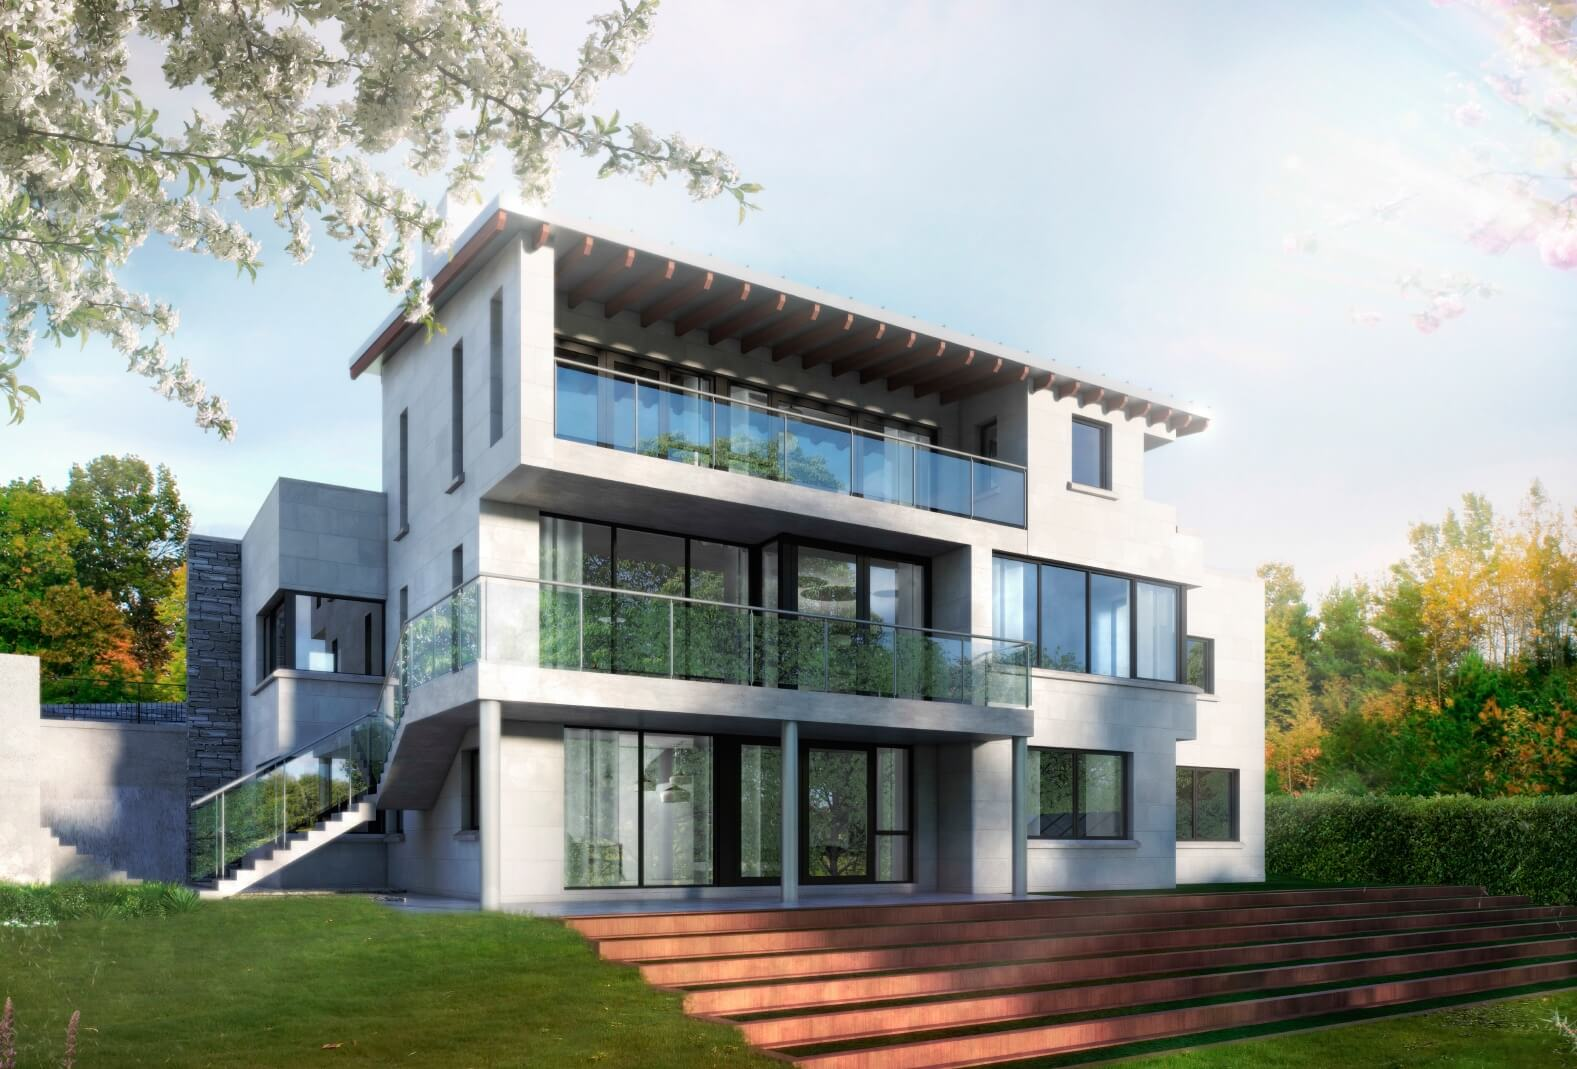 New project in Killiney gets planning